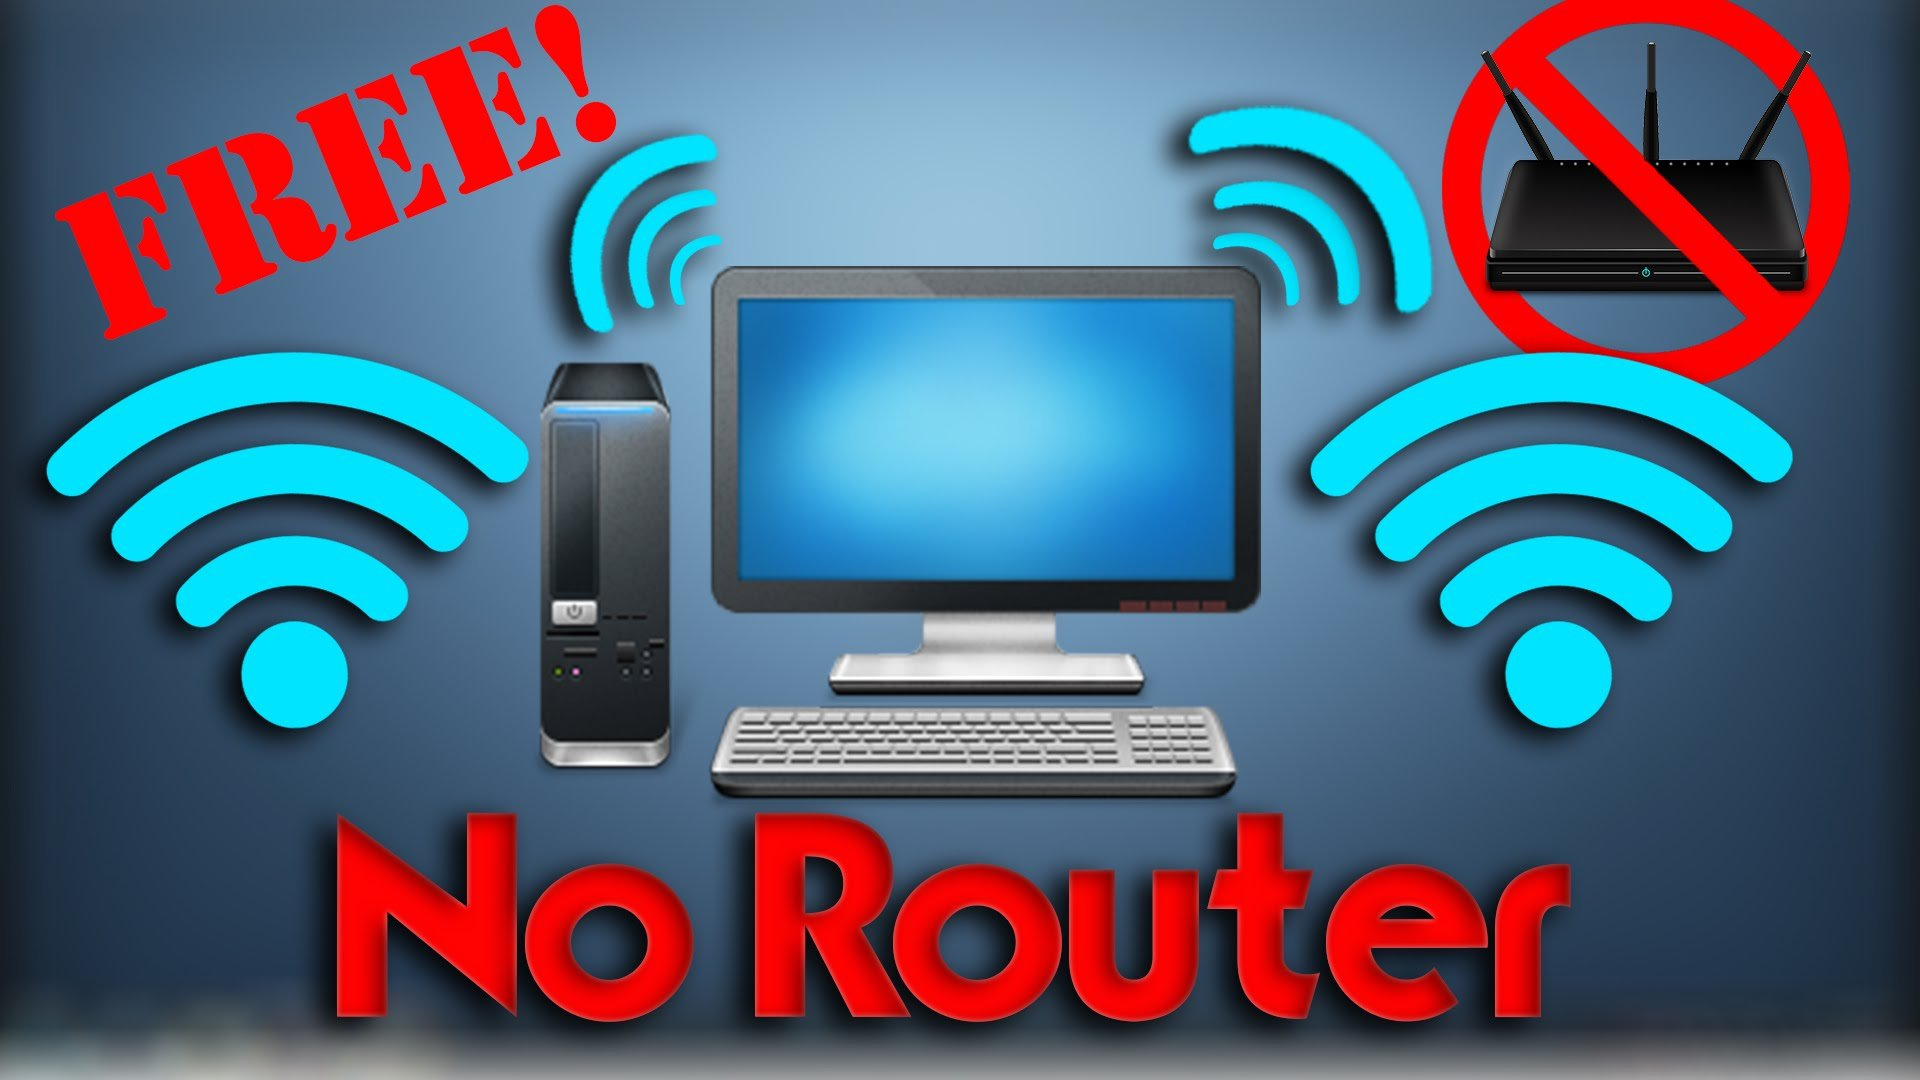 How To Create A Wi-Fi Hotspot On Your PC Without Router